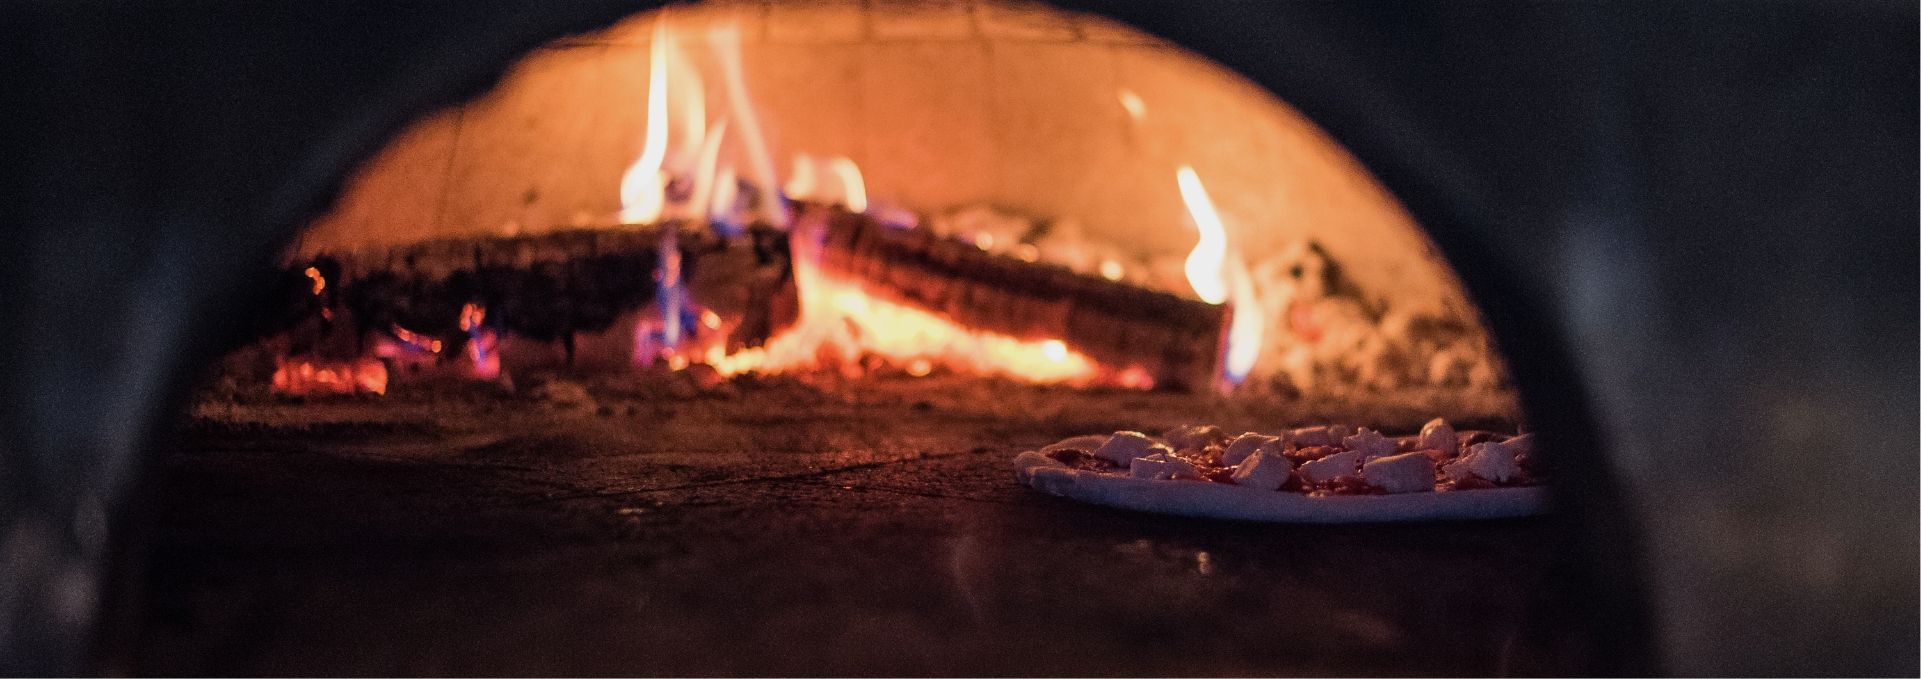 Wood Fired ovens imported from Napoli, Italy